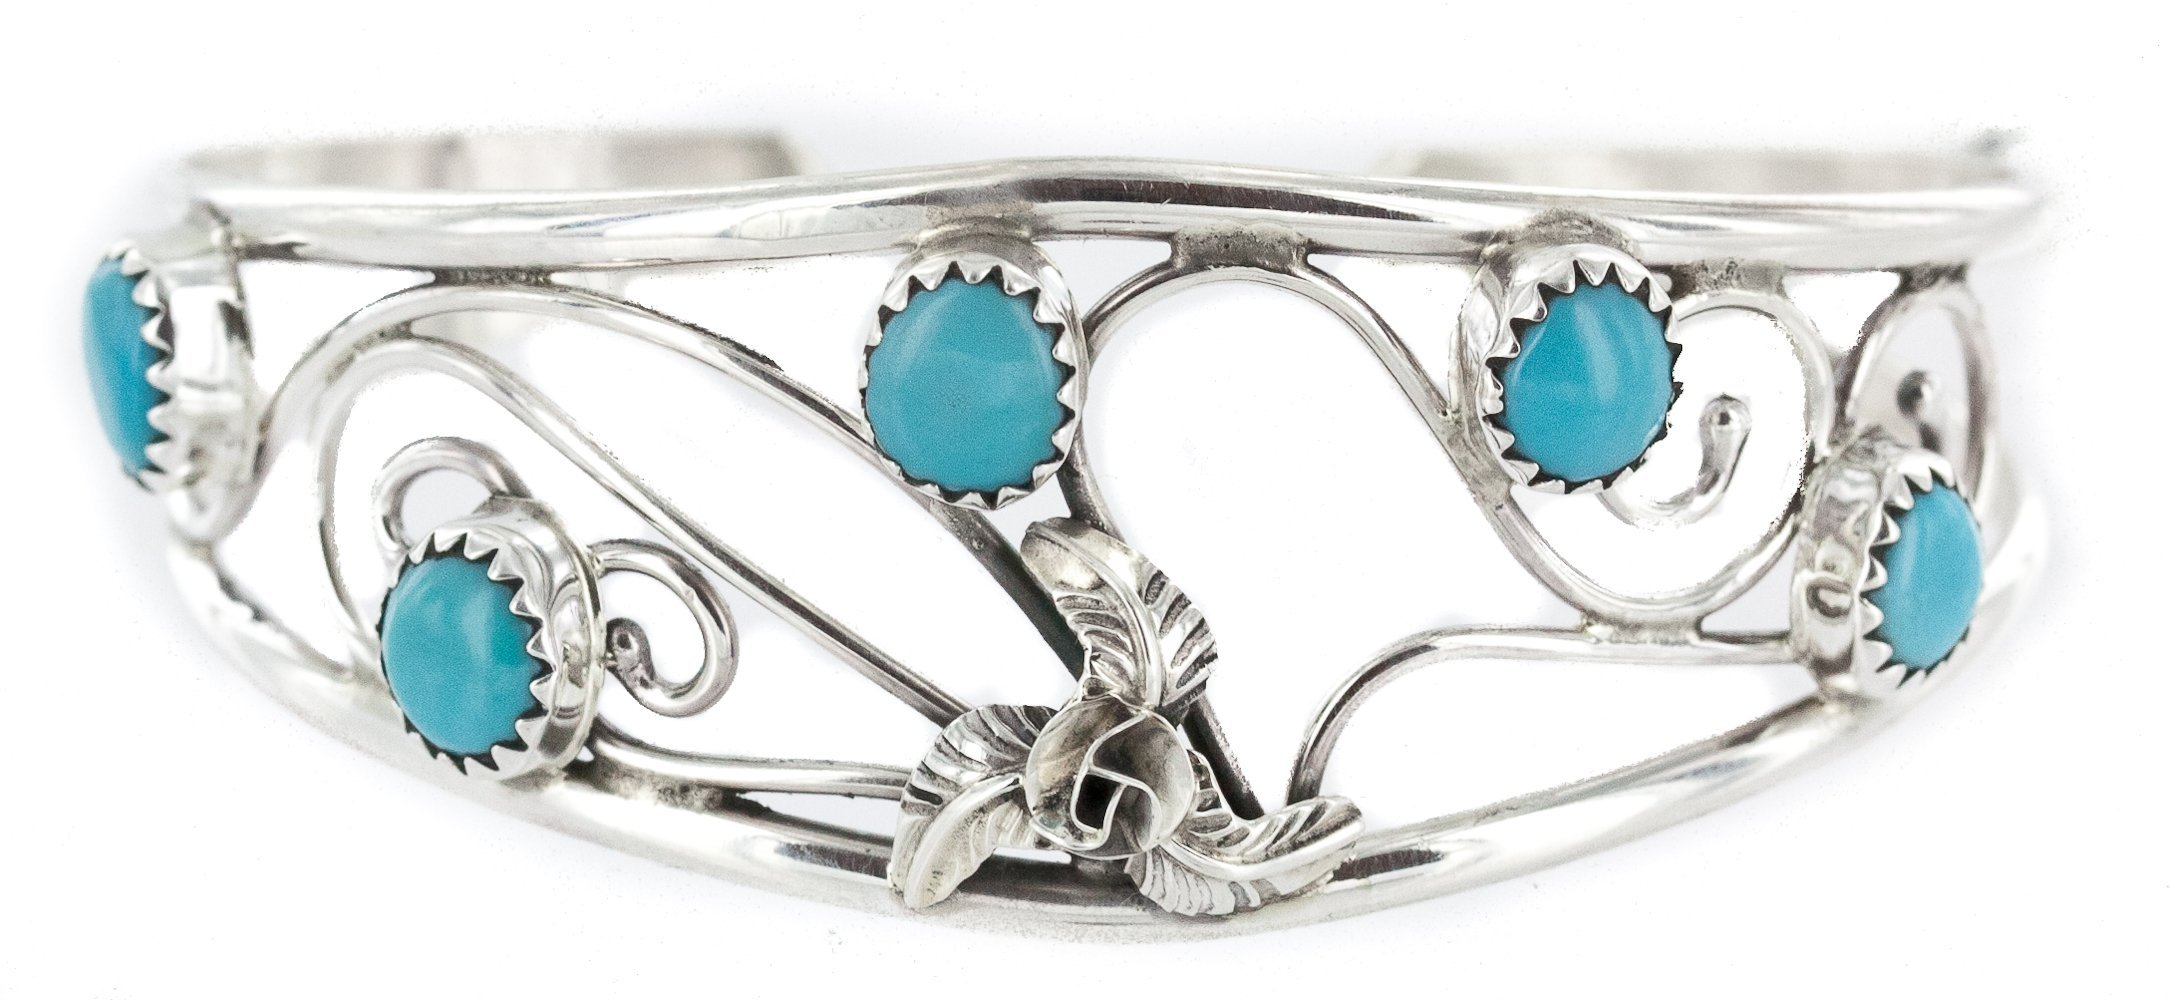 $300 Retail Tag Handmade Authentic Made by C. Nez Navajo Silver Natural Arizona Sleeping Beauty Turquoise Cuff Bracelet